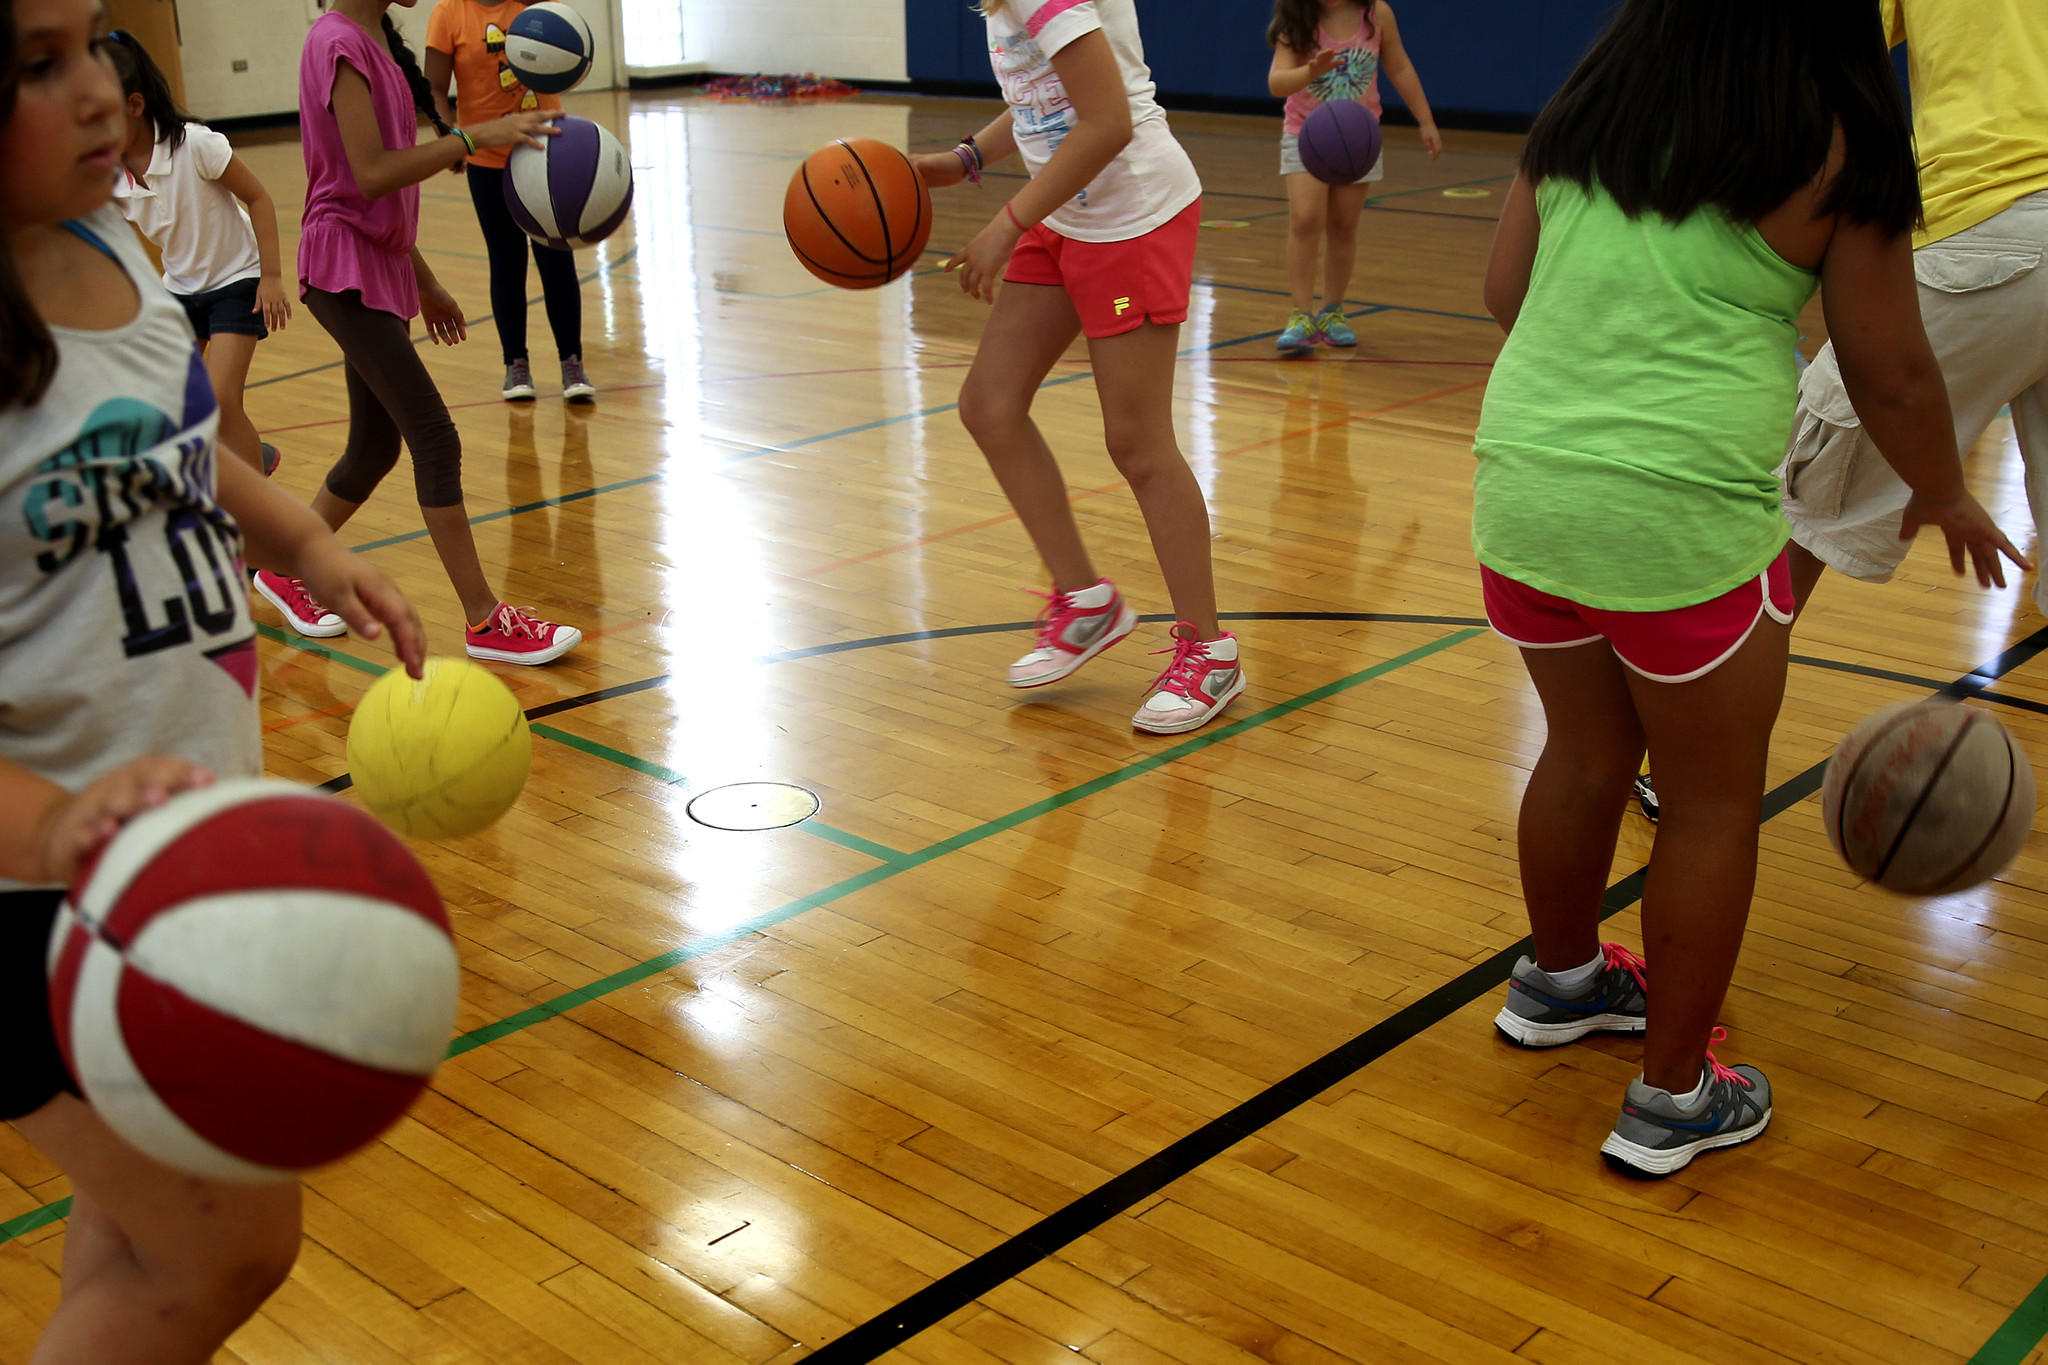 Girls play games with basketballs for the after school program through the Highland Park/Deerfield District 112 Education Foundation on Thursday, Sept. 19, 2013 in Highland Park, Ill.